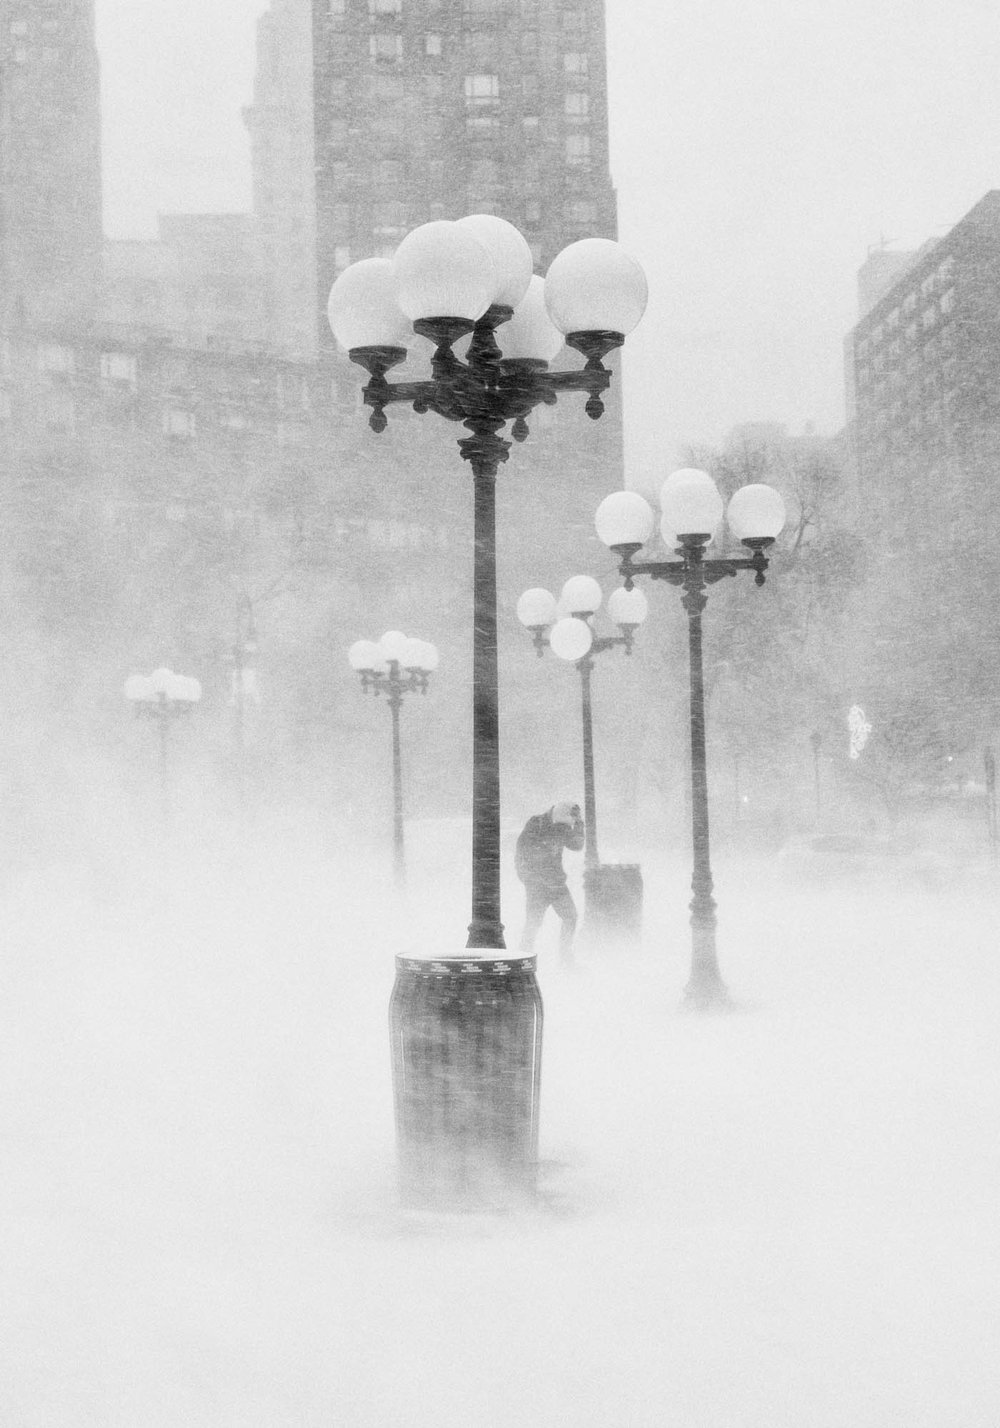 180406_NYC_Snowstorm_Review_006.jpg